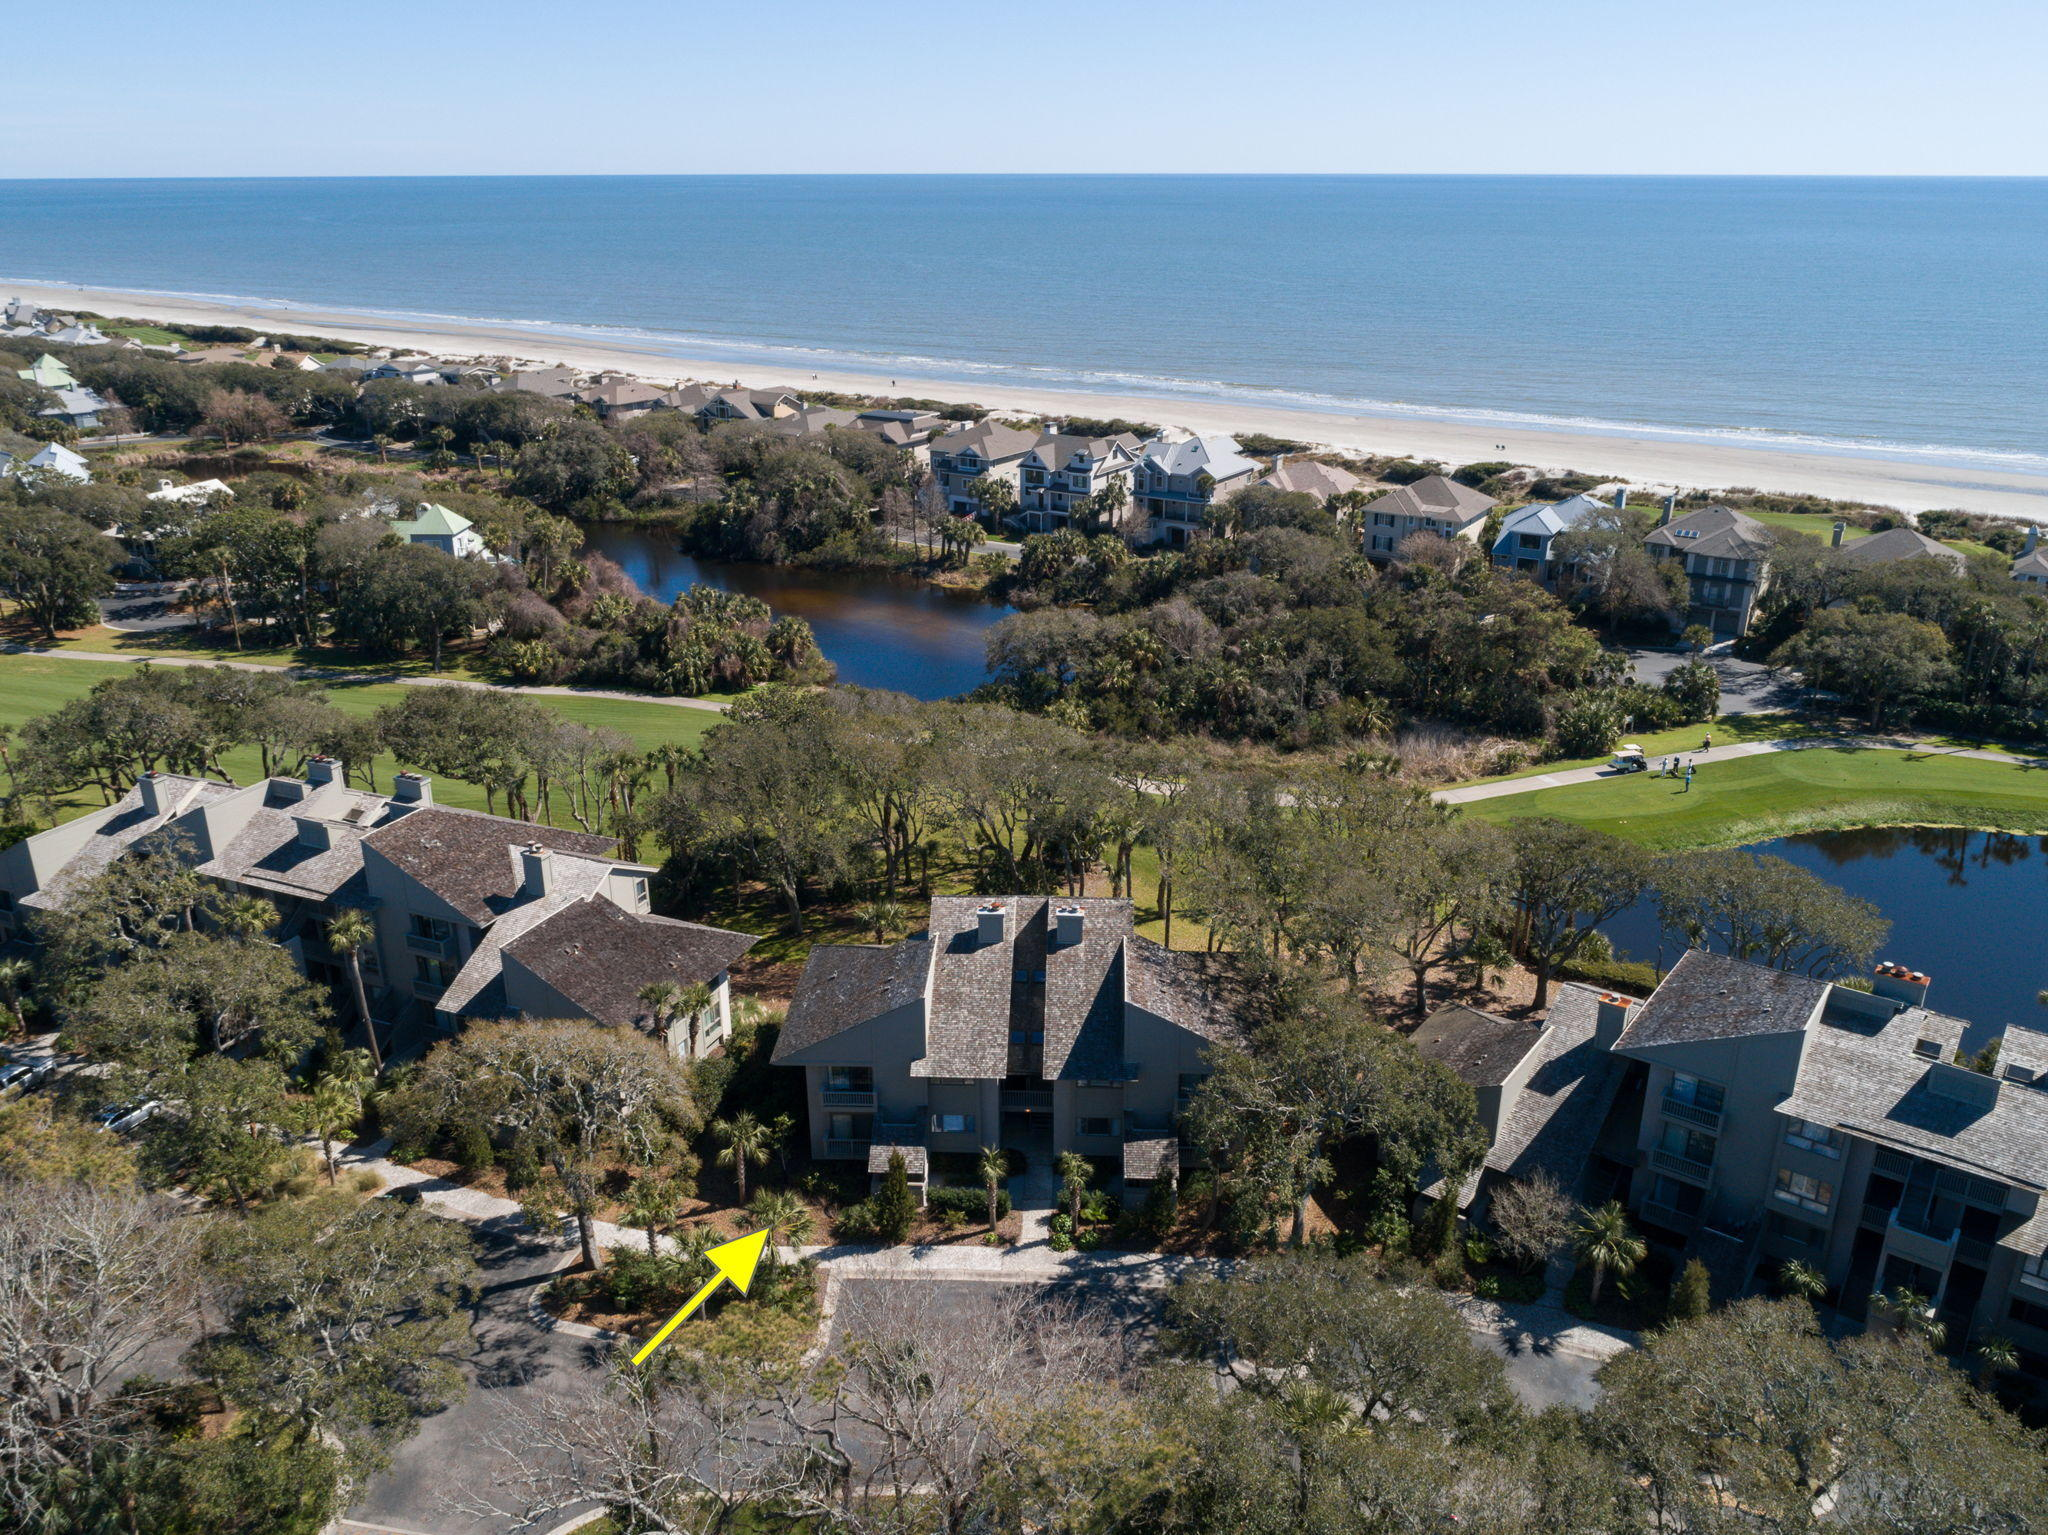 Kiawah Island Homes For Sale - 5001 Green Dolphin, Kiawah Island, SC - 32